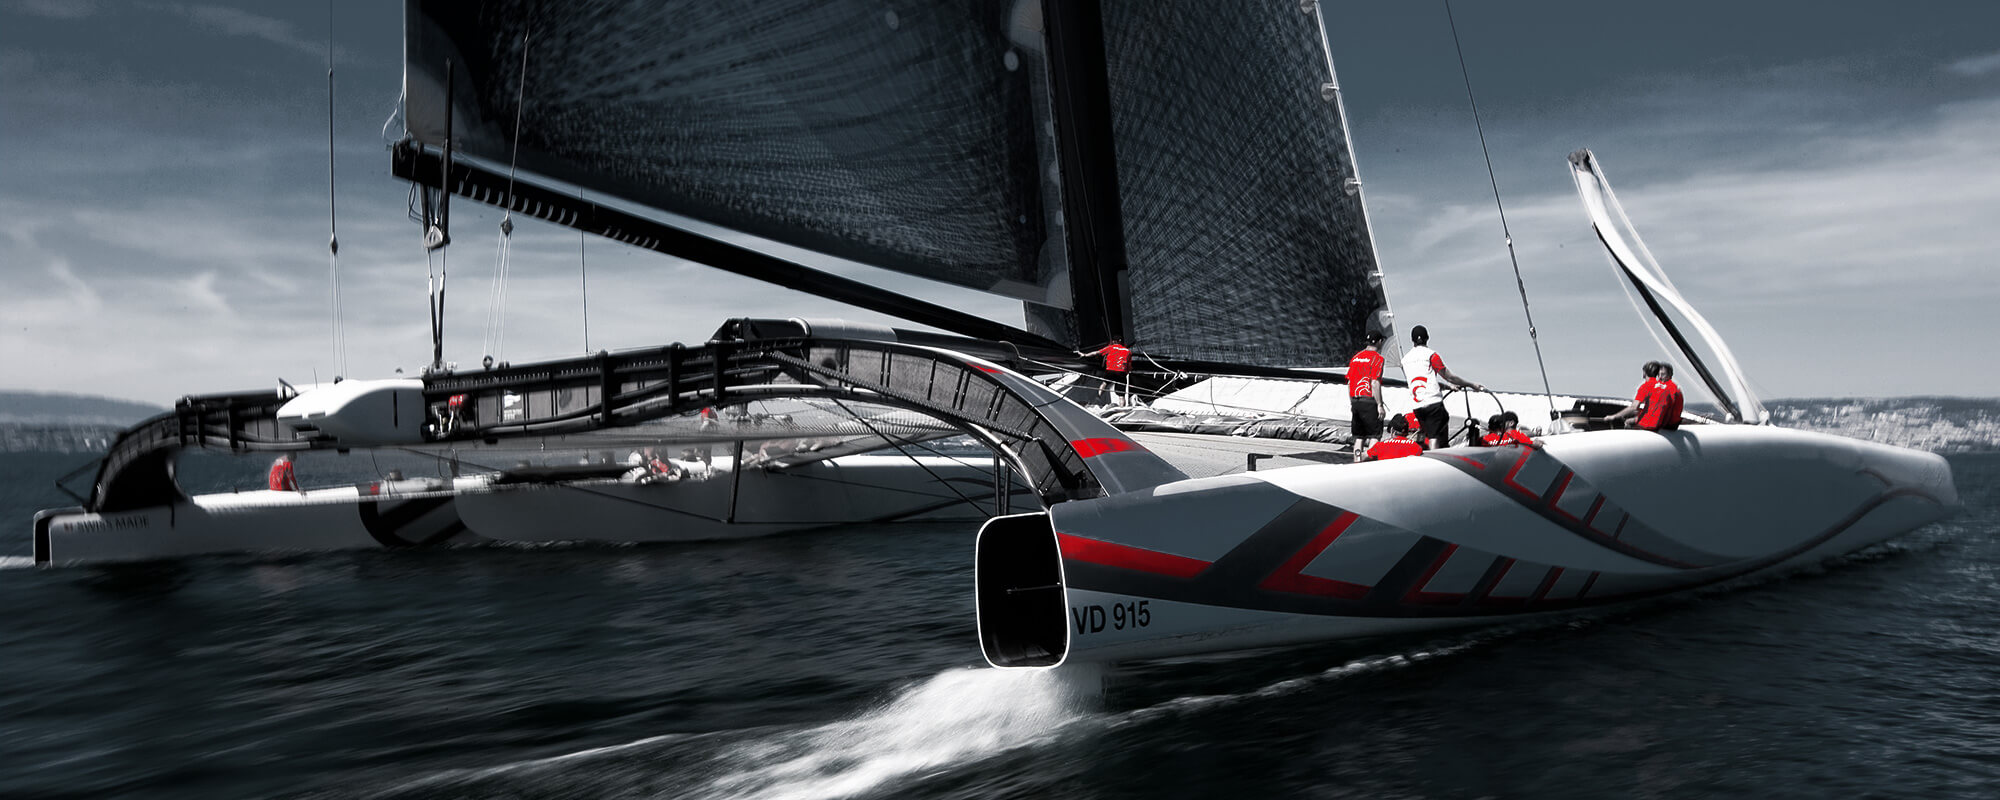 The 33rd America S Cup Alinghi Official Website